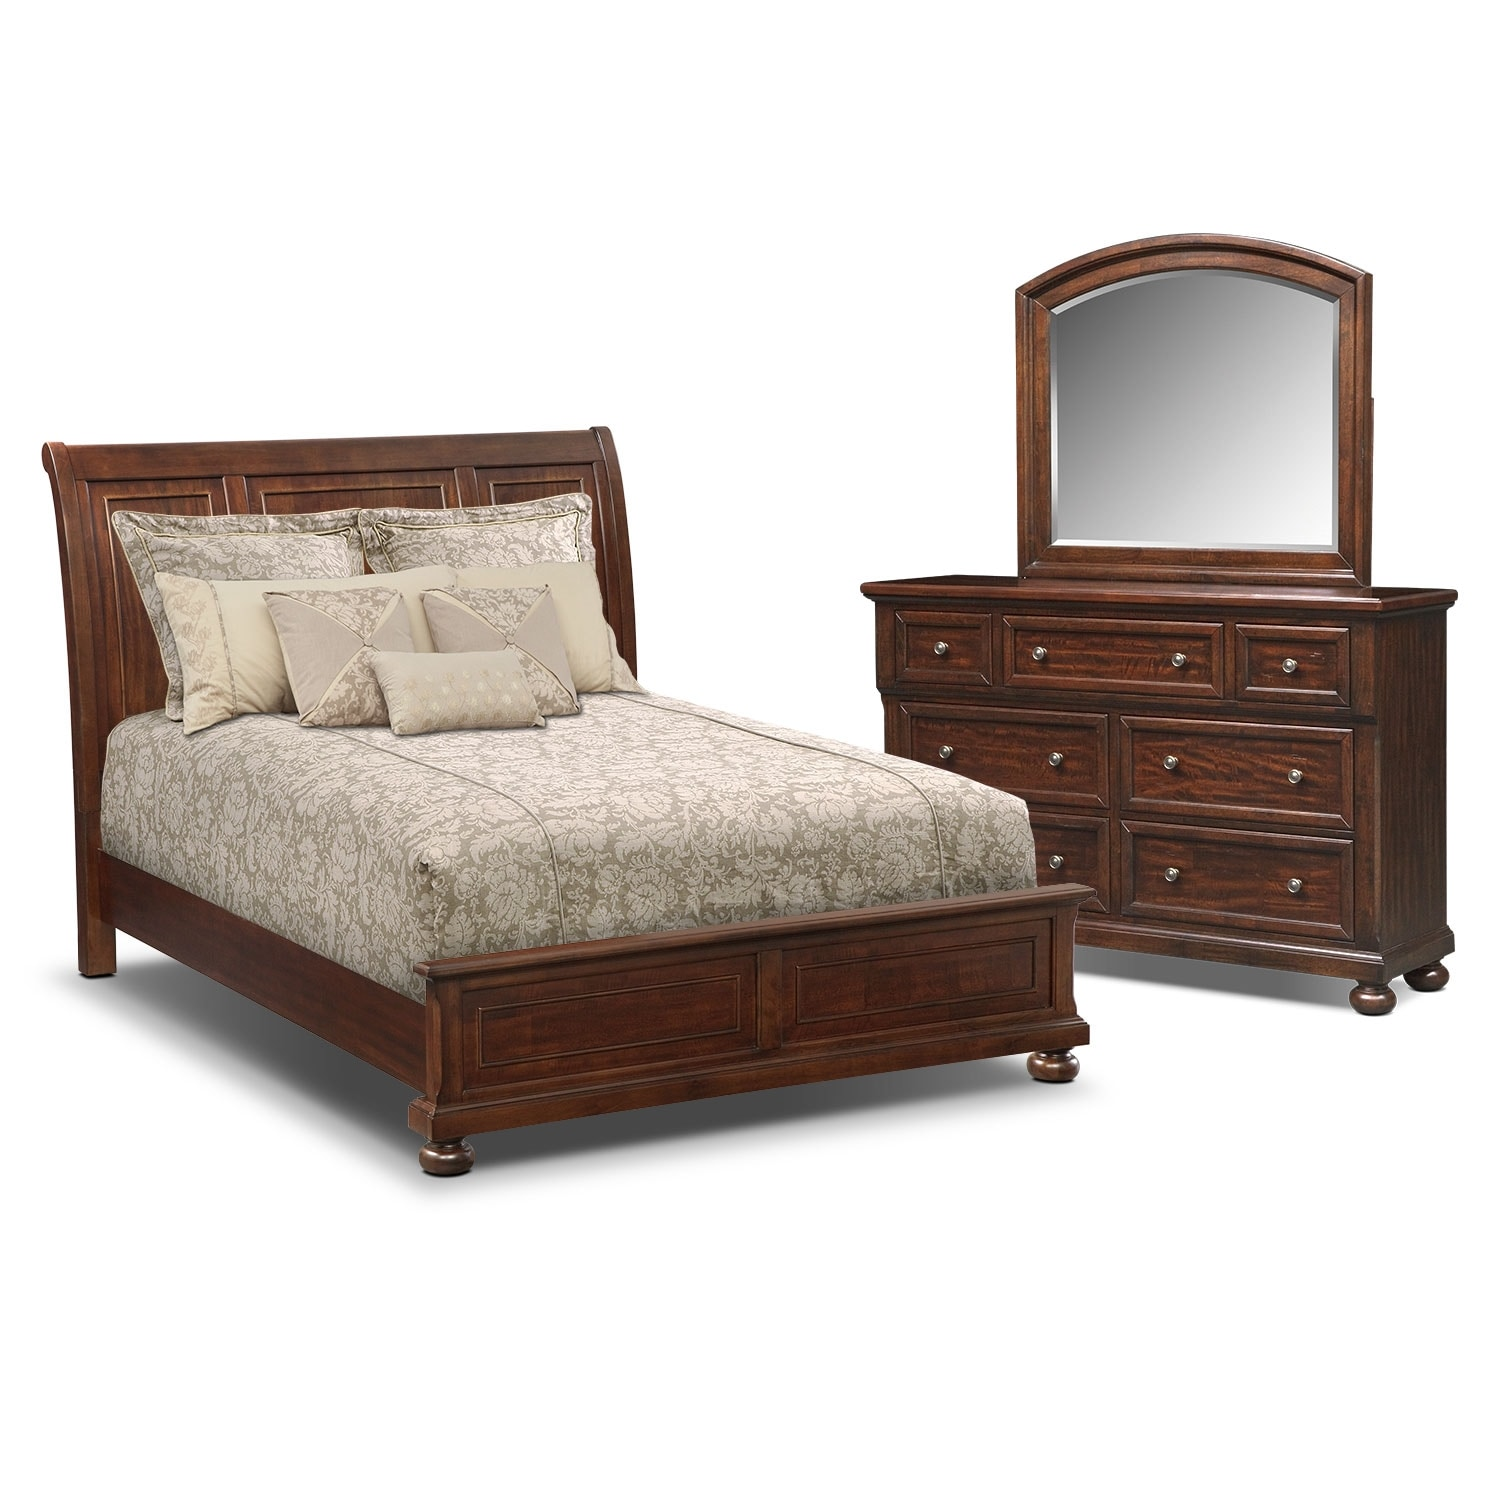 Hanover 5-Piece Queen Panel Bedroom Set - Cherry